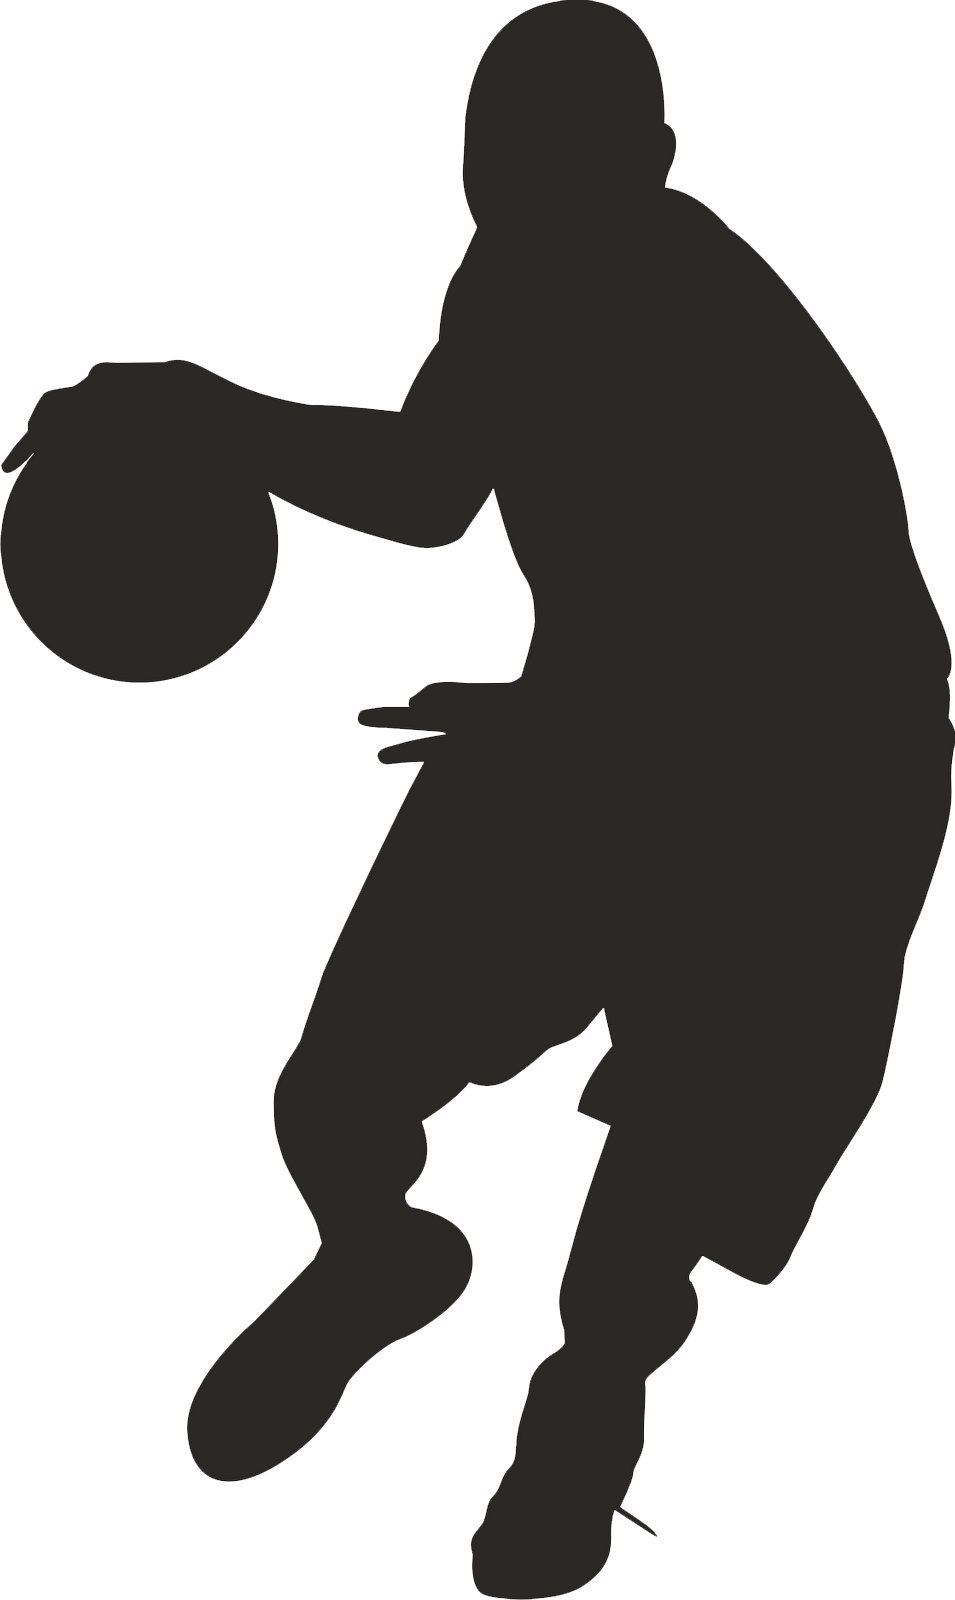 Page full of basketball clipart clipart freeuse stock Silhouette Basketball Players at GetDrawings.com | Free for personal ... clipart freeuse stock